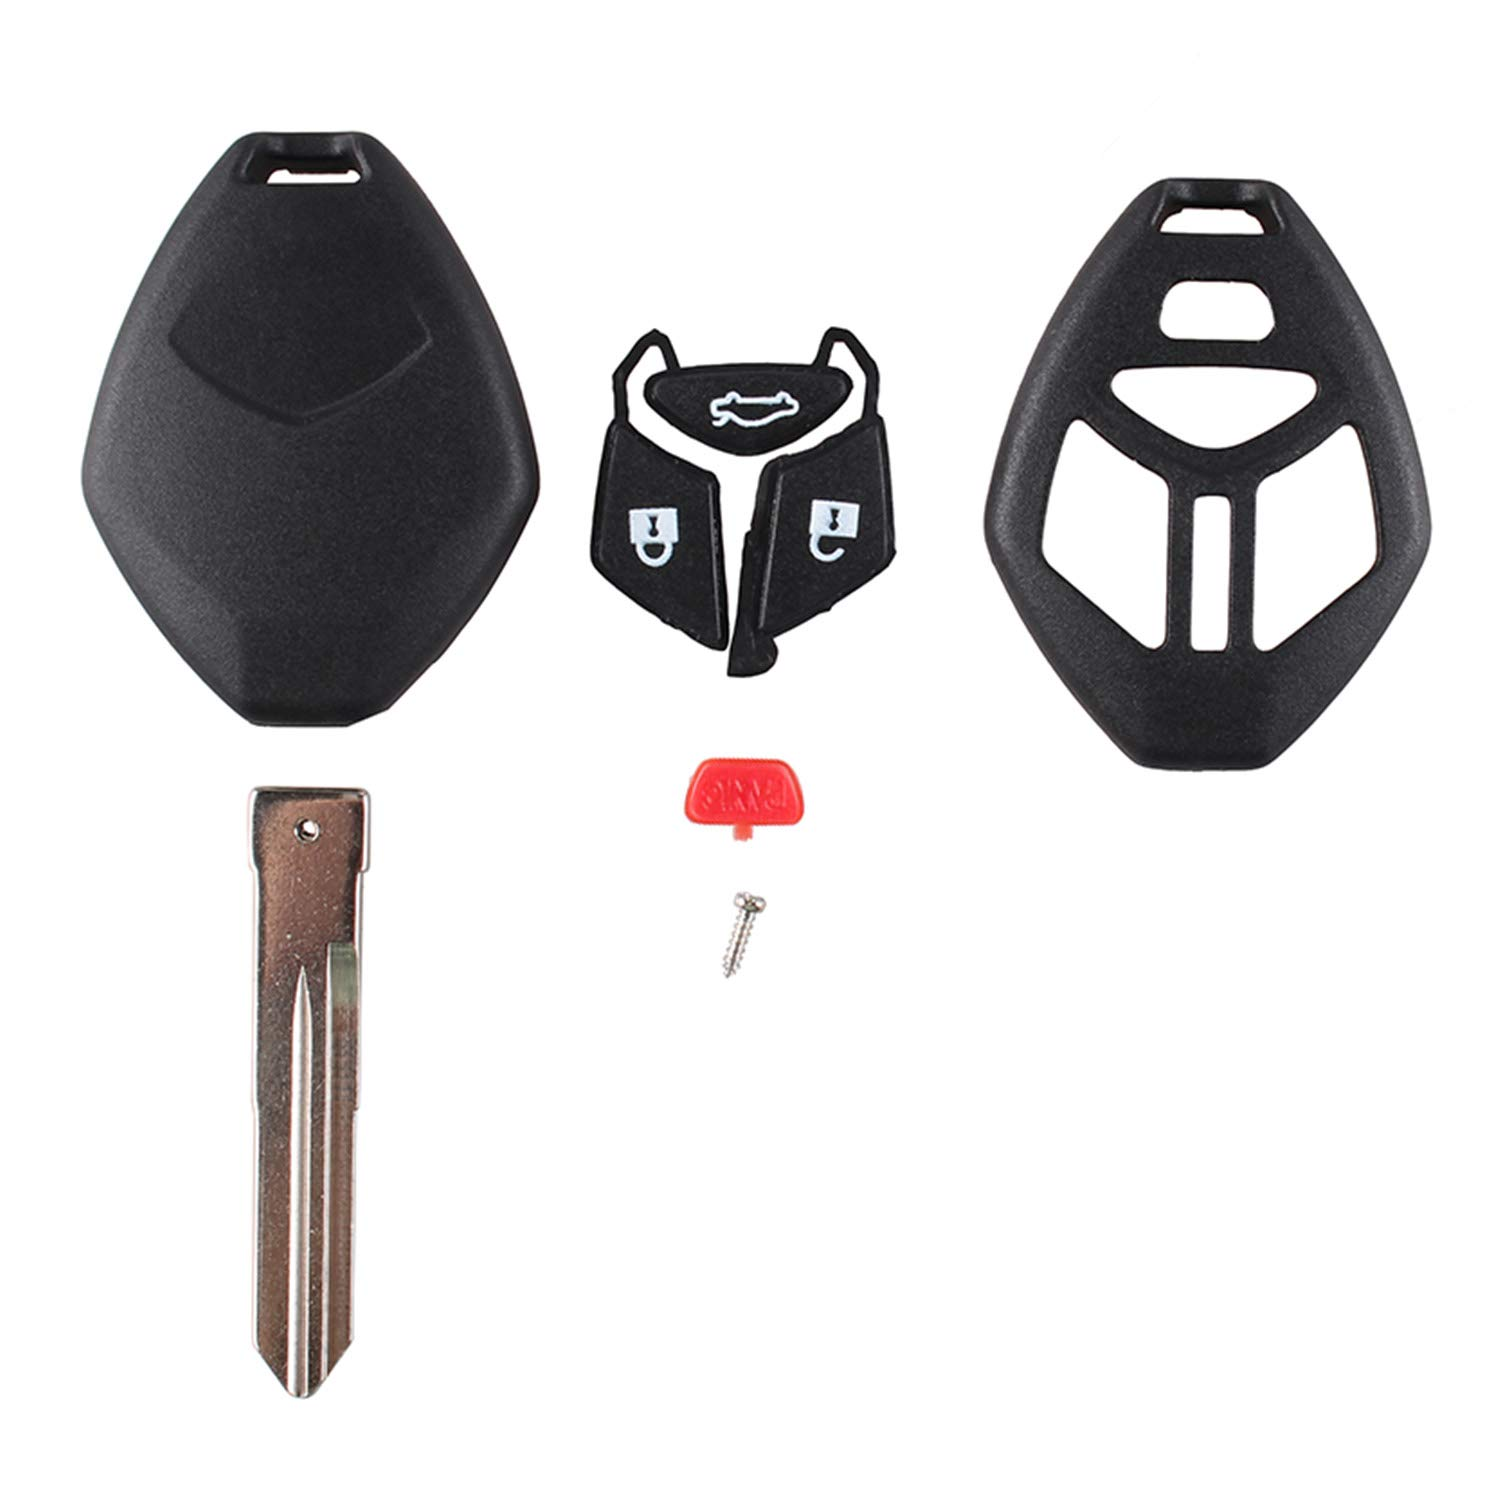 4 Buttons Remote Key fob for 2006-2007 Mitsubishi Galant for Mitsubishi Eclipse 2006 /& 2008, Left Blade